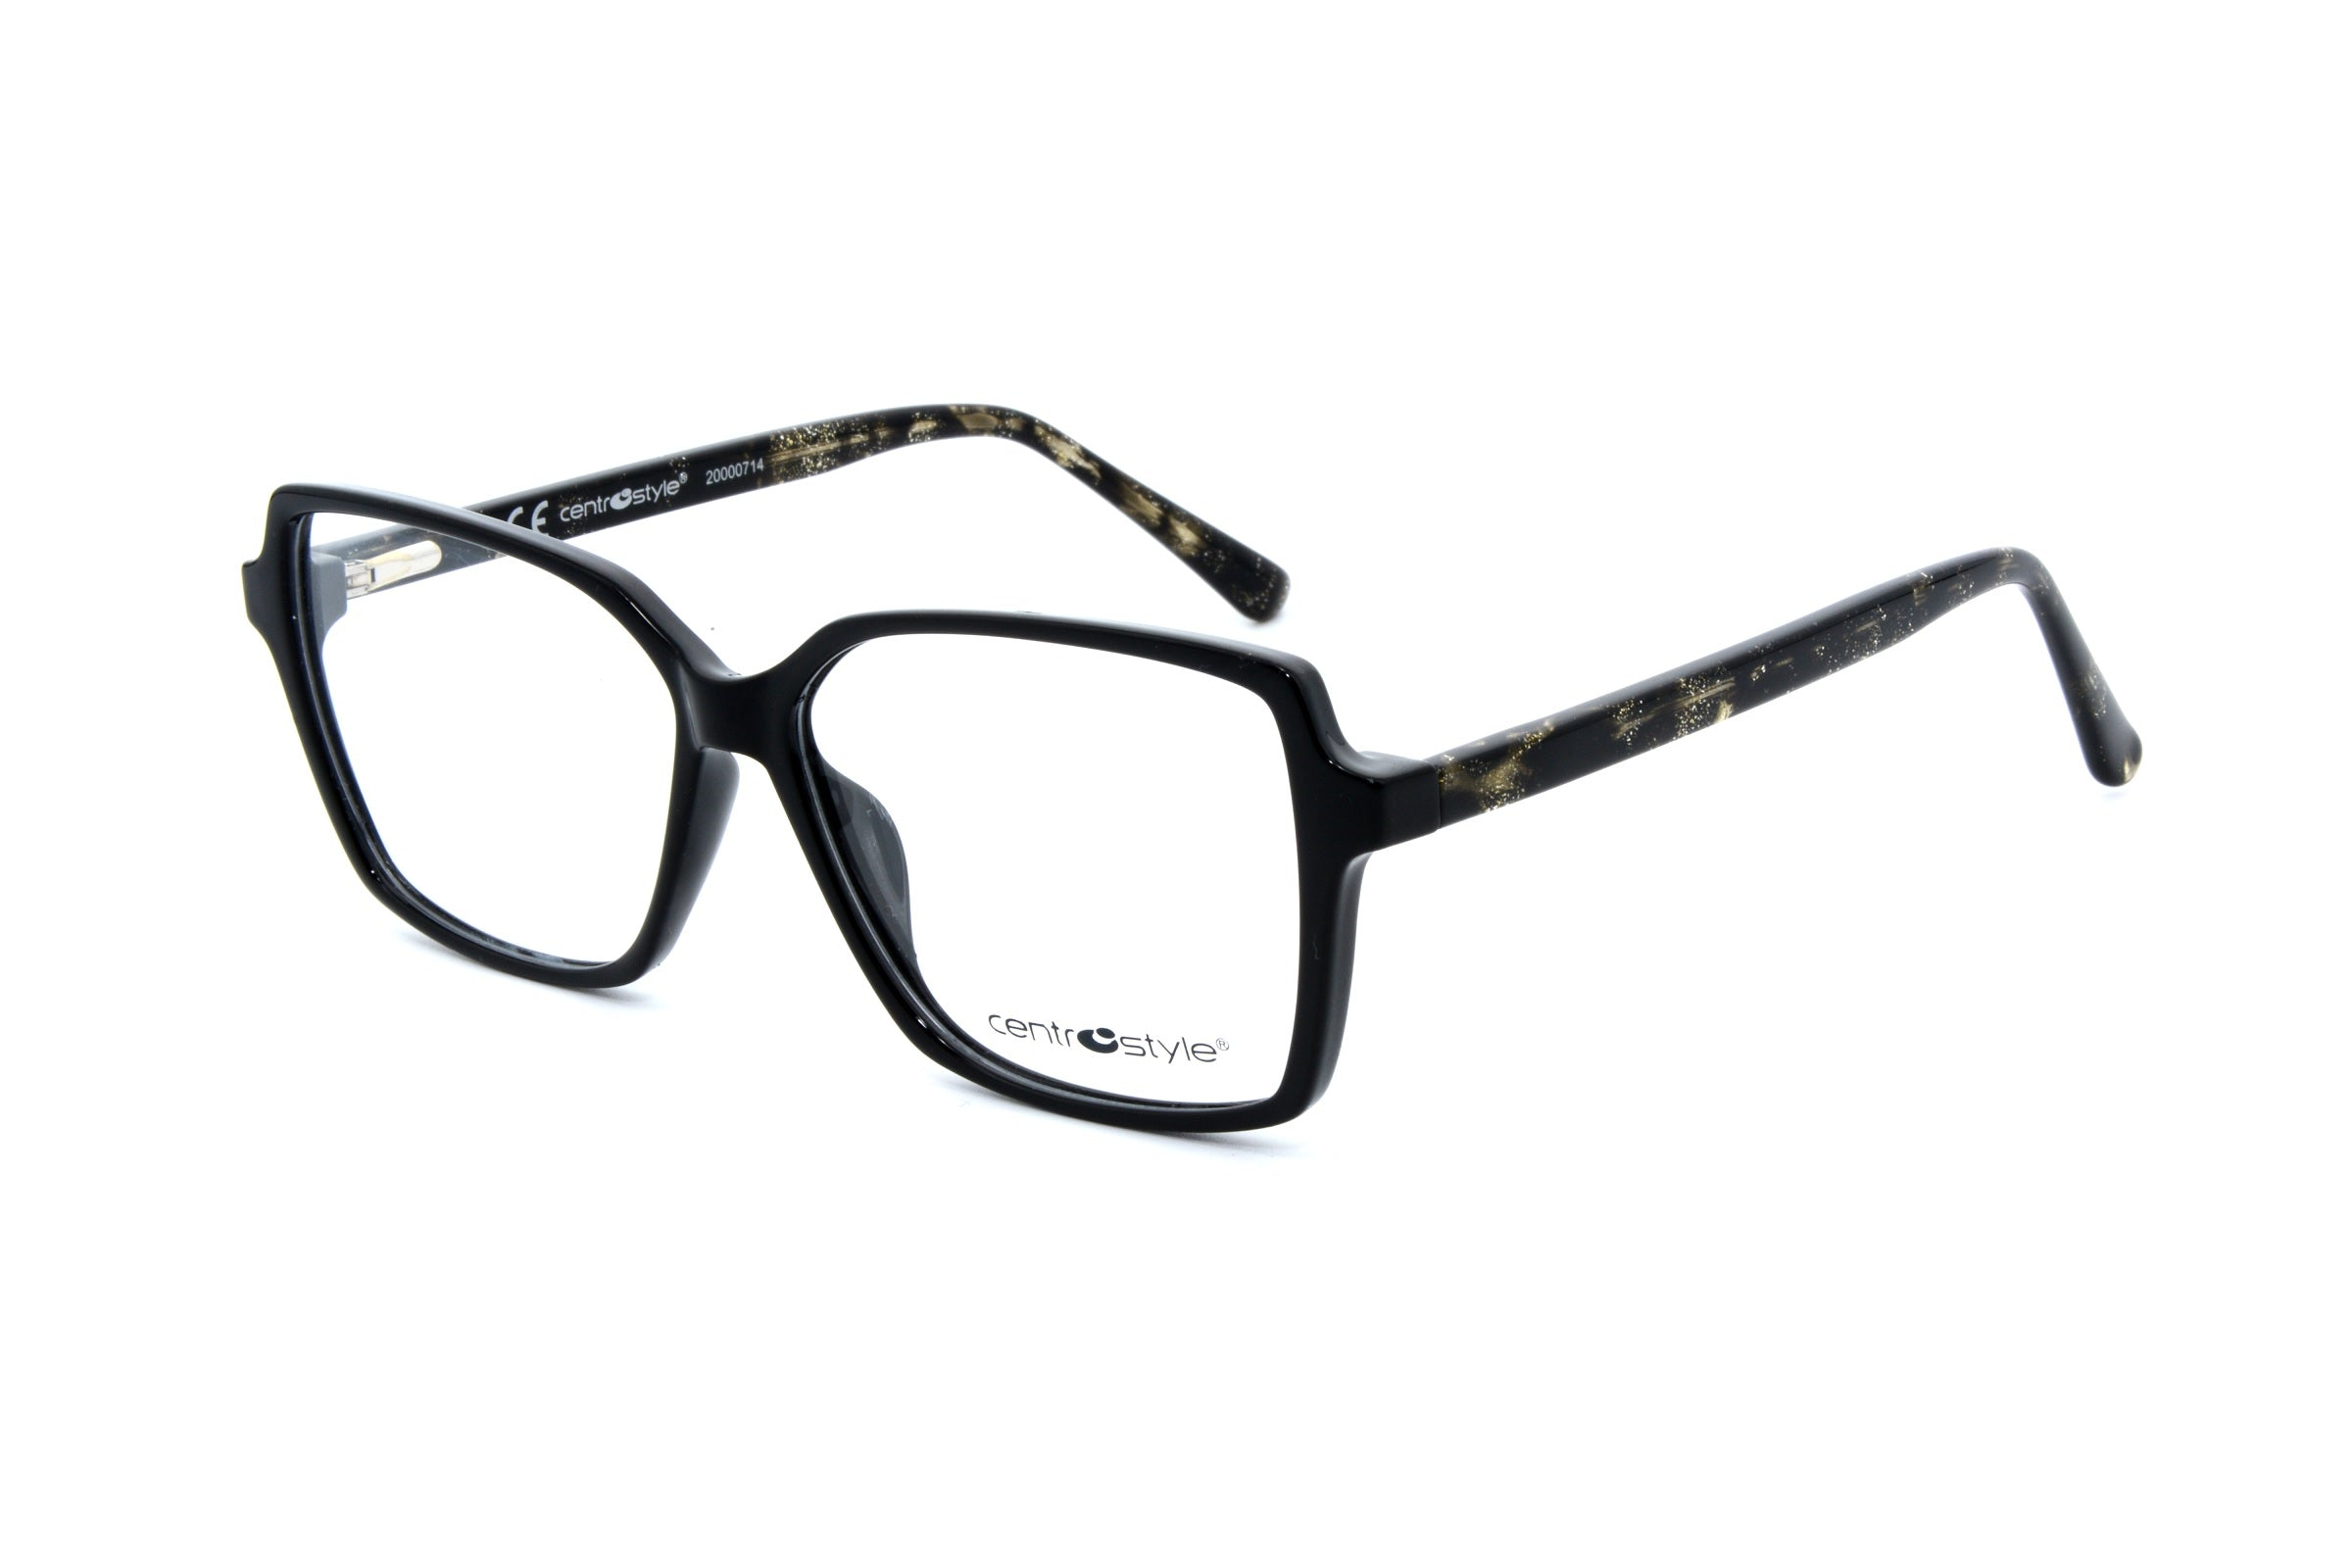 Centrostyle eyewear F027954050000 - Optics Trading